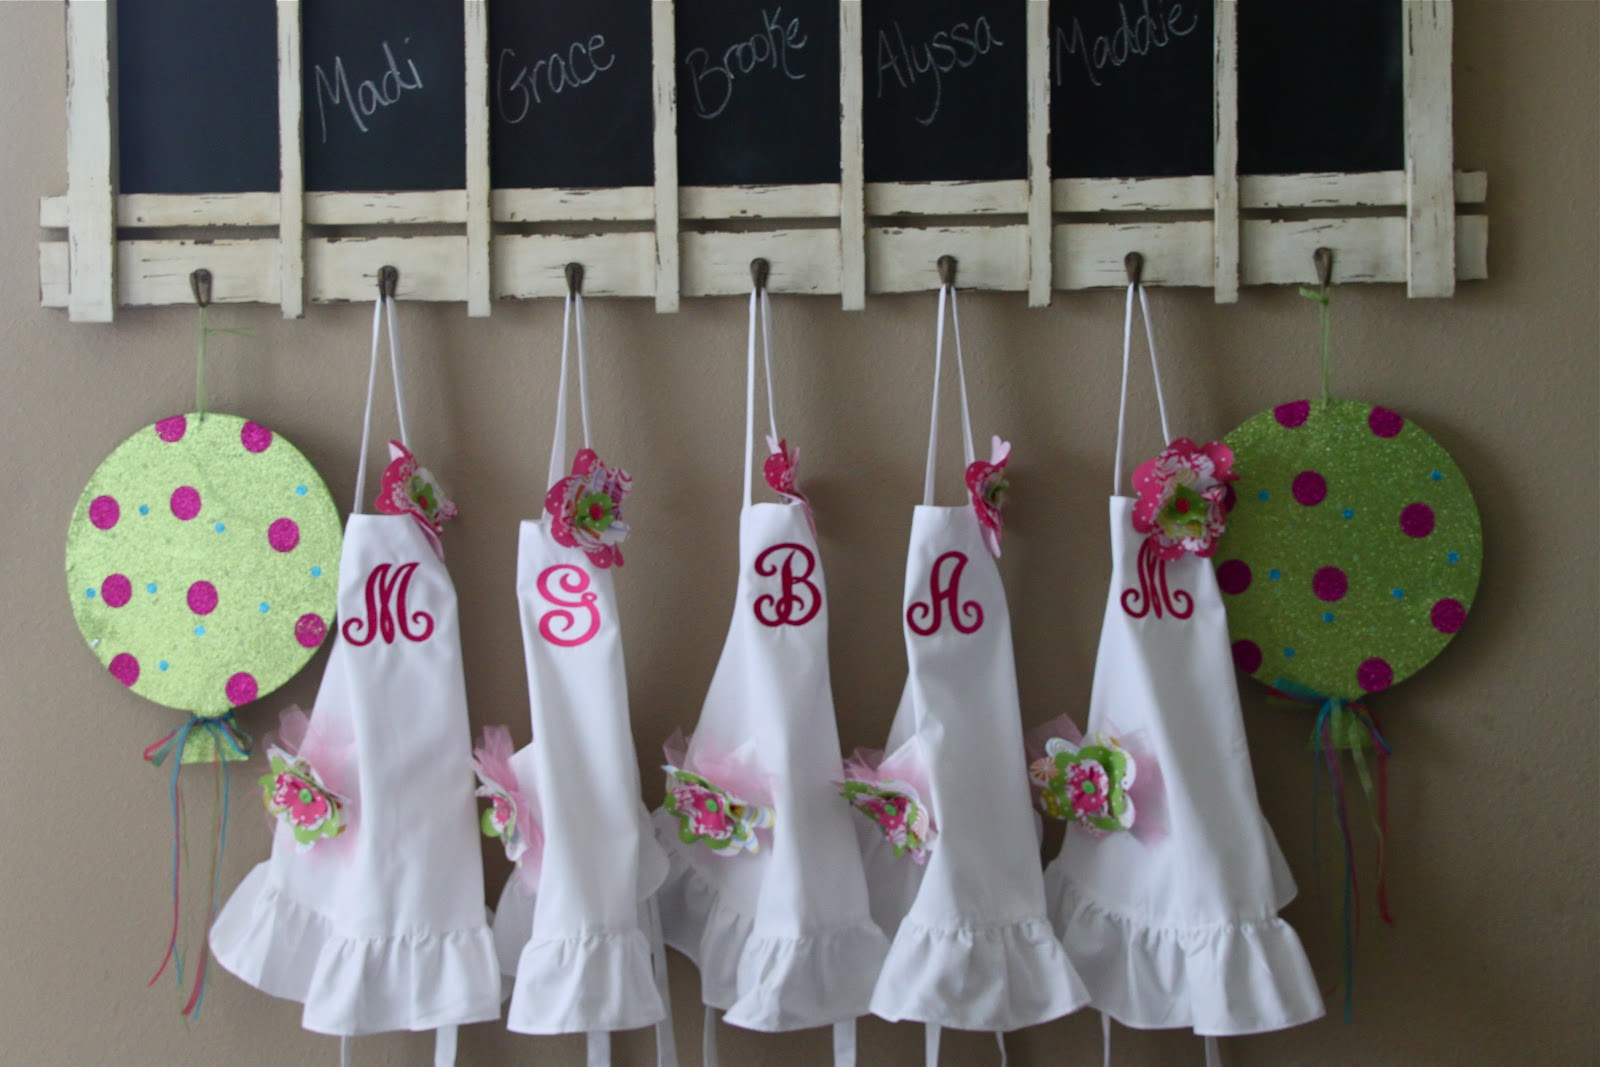 White apron hobby lobby - To Make The Flower Embellishments They Used Graduated Cookie Cutters To Trace And Cut Different Sized Flowers Out Of Fabric Then Hand Stitched Them